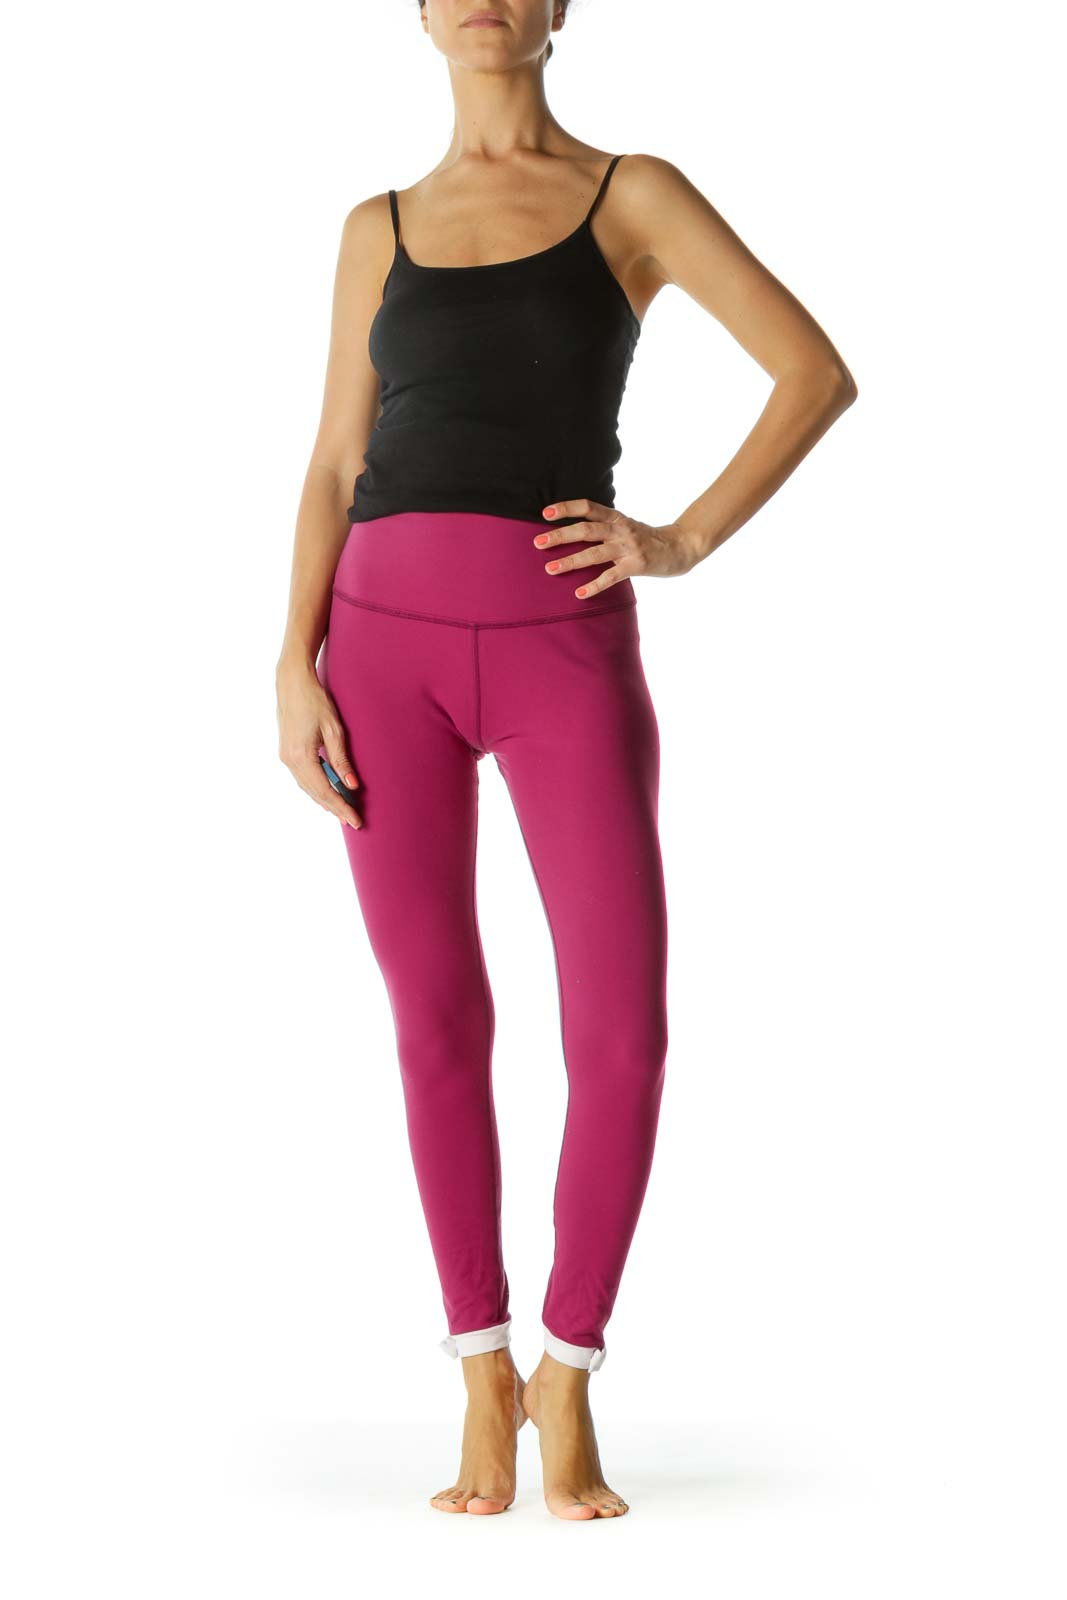 Magenta Pink Ankle-Bows Detail Yoga Pants